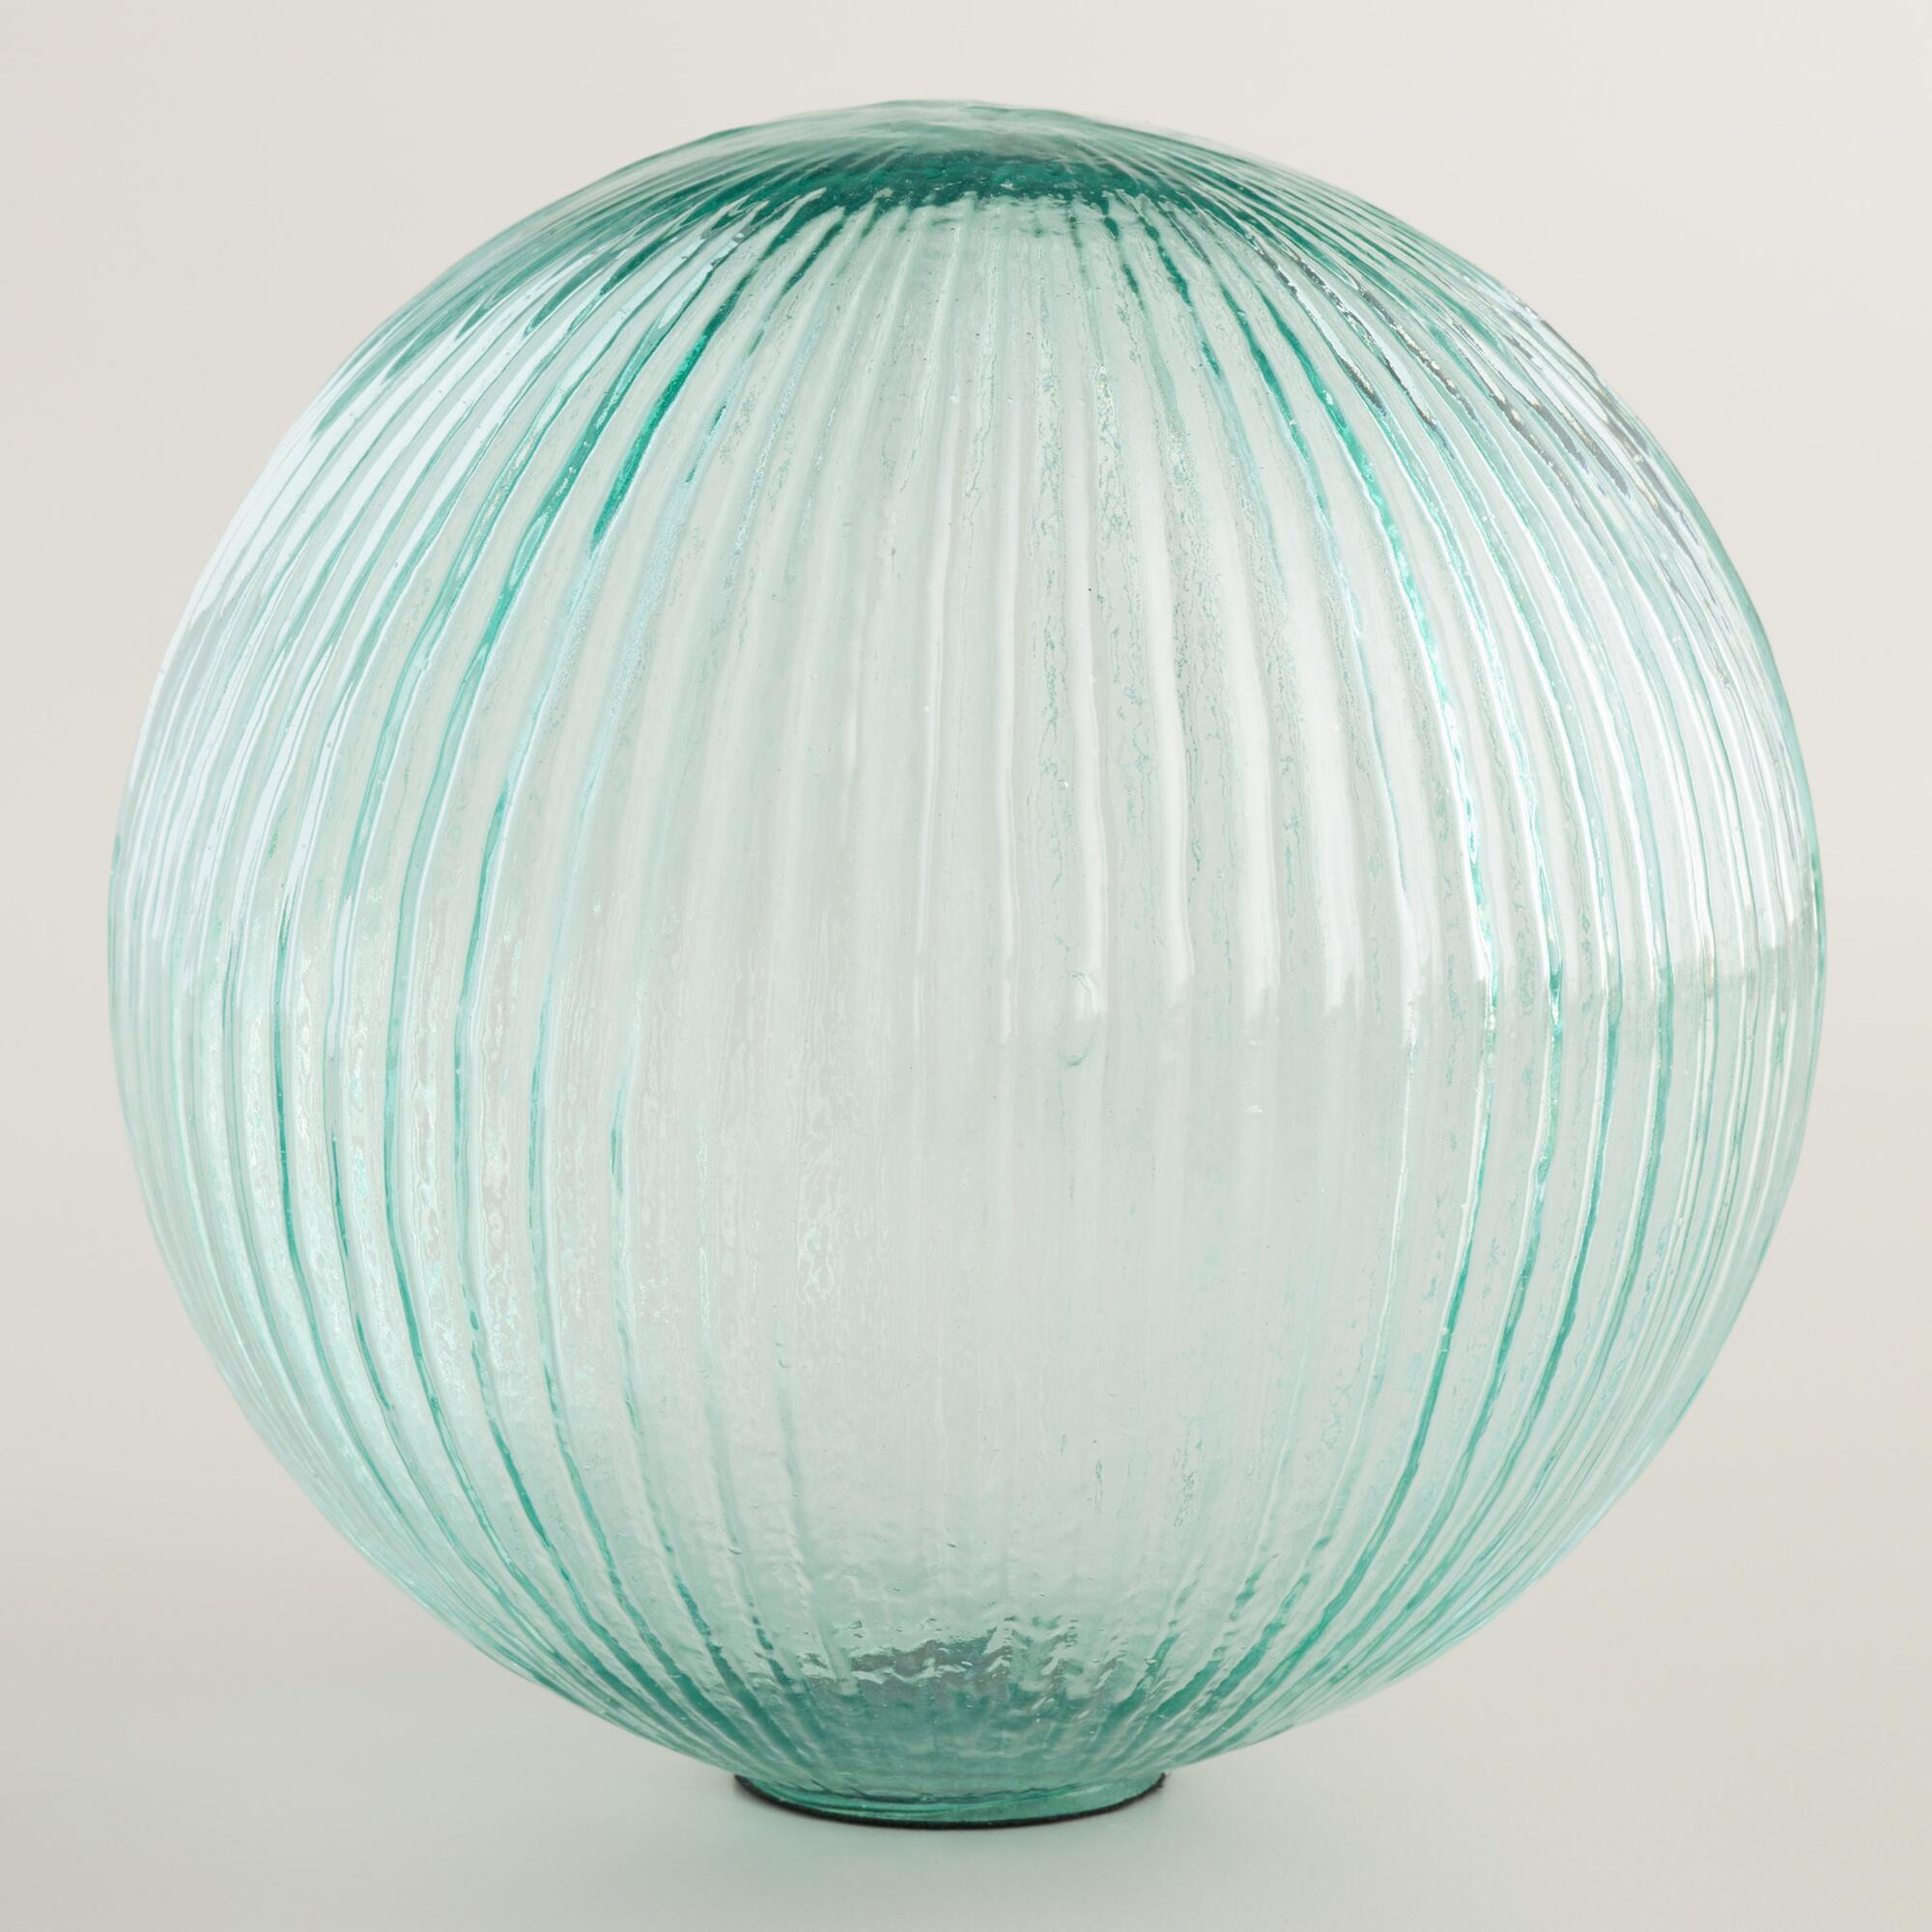 Large teal glass sphere decor world market